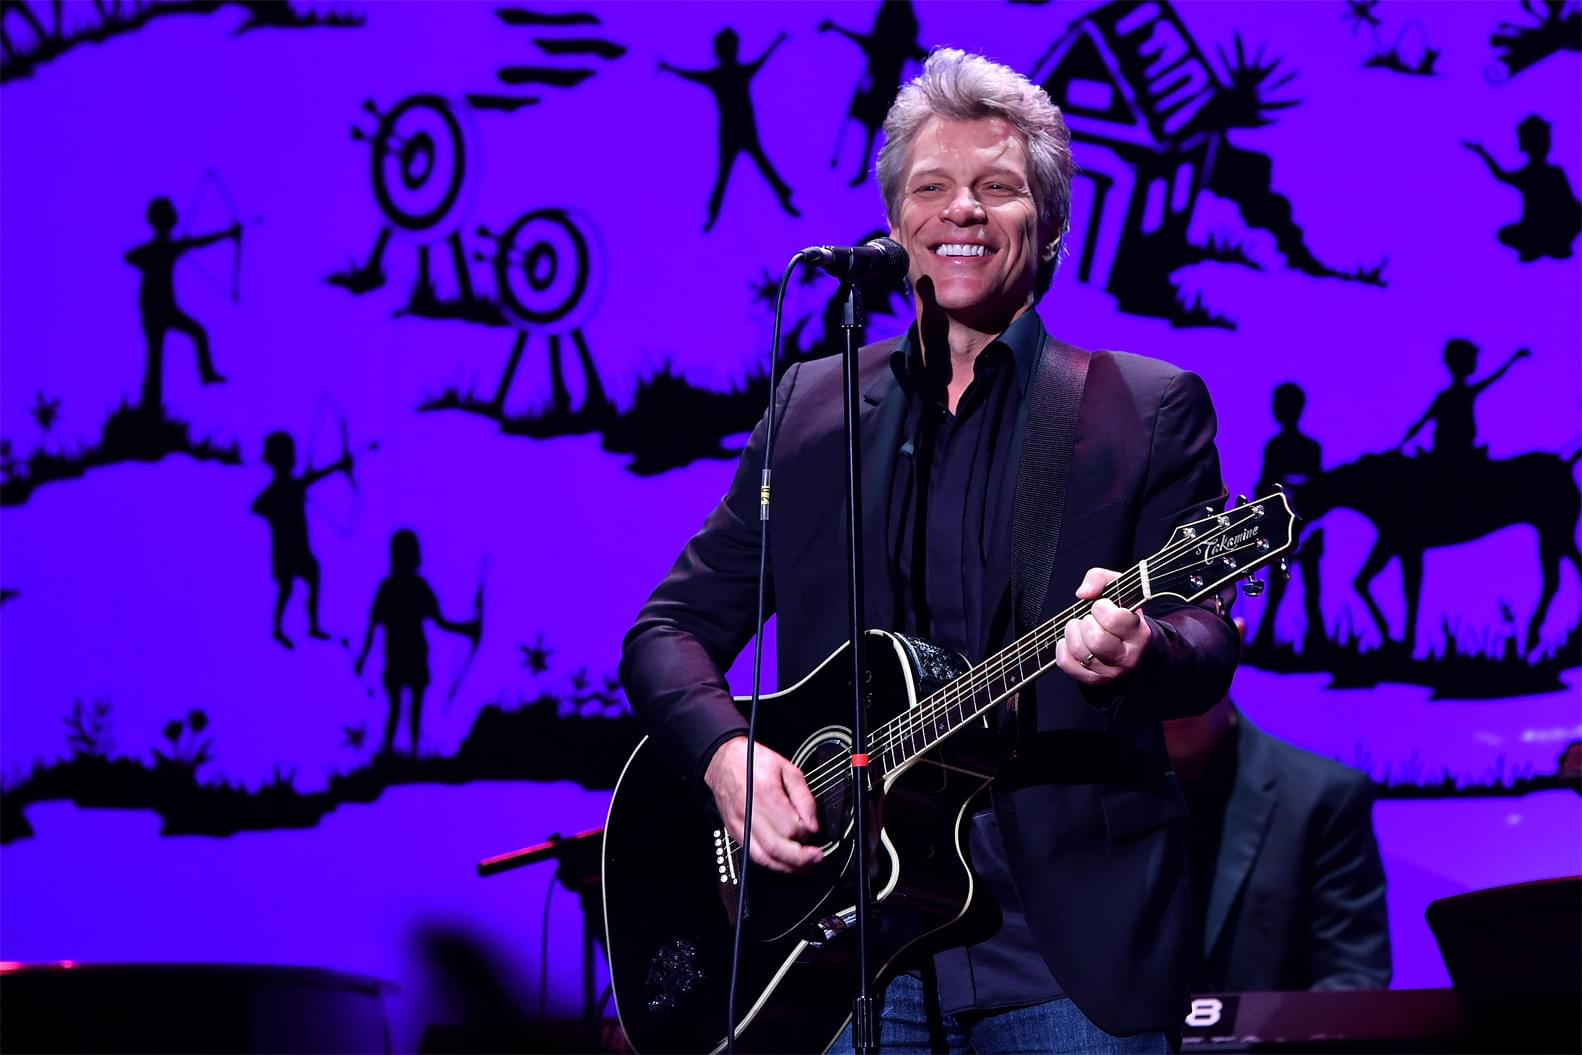 NEW ALBUM RELEASE – Bon Jovi's '2020' is out now!